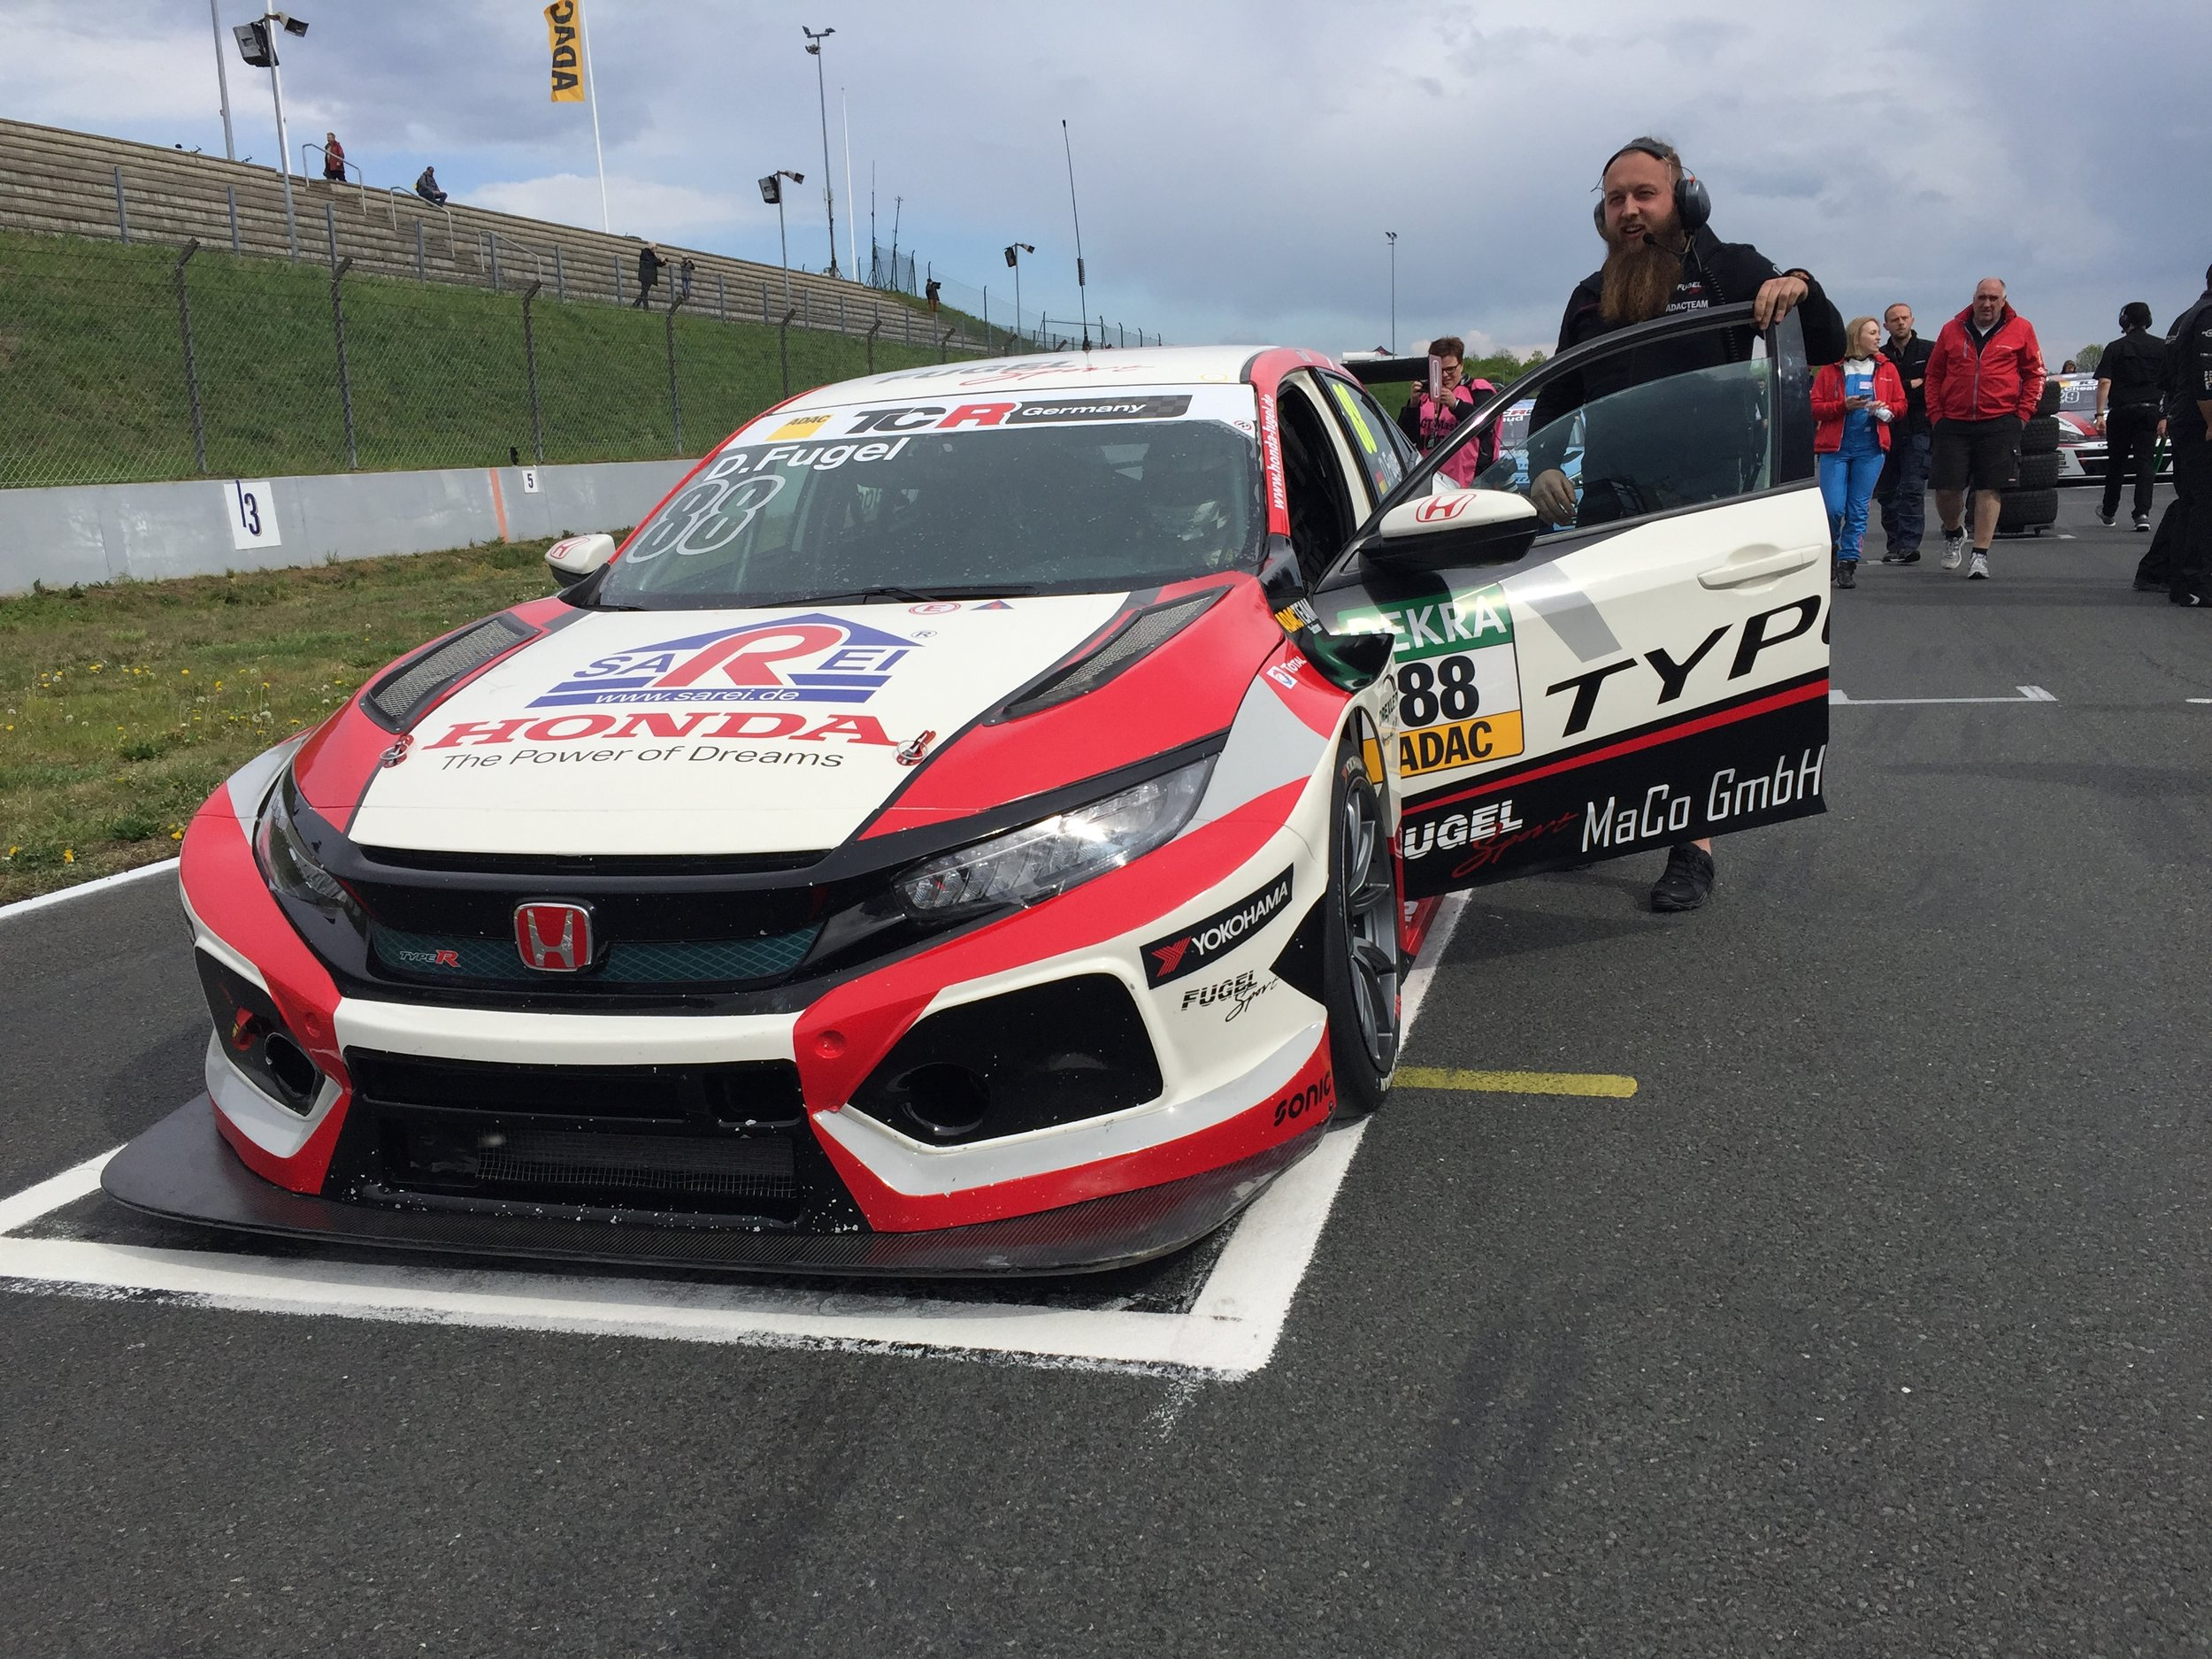 ADAC TCR Germany Hyunday Team Fugel